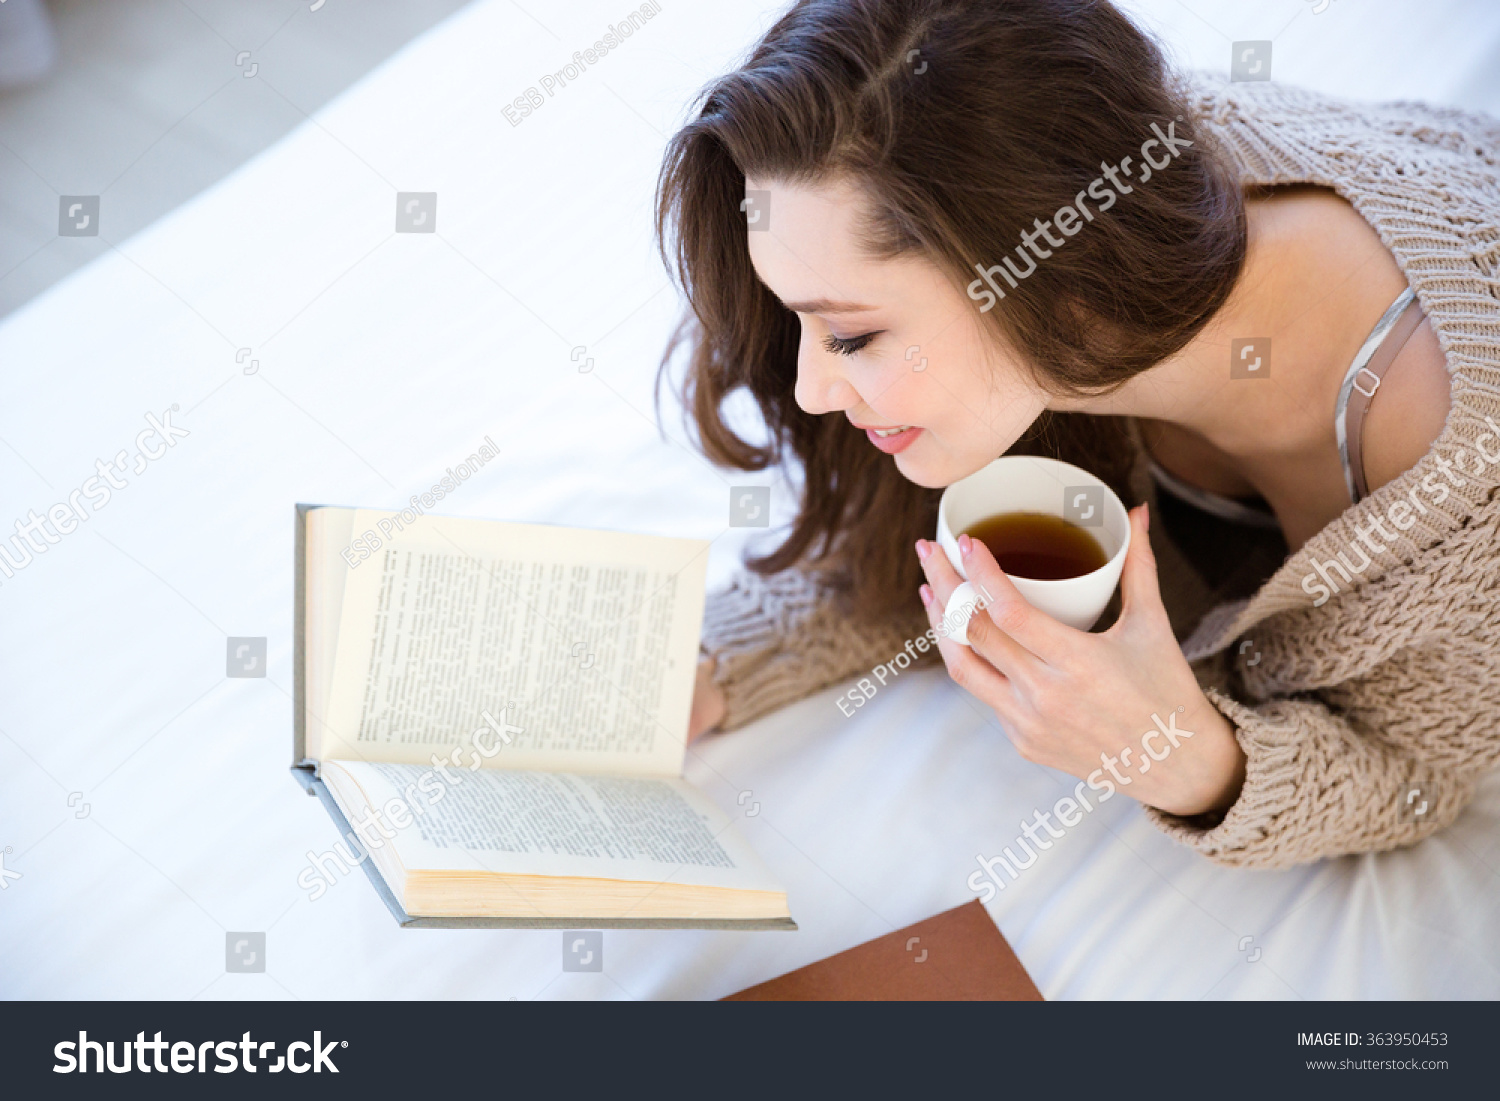 Cute Lovely Young Woman Reading Book Stock Photo 363950453